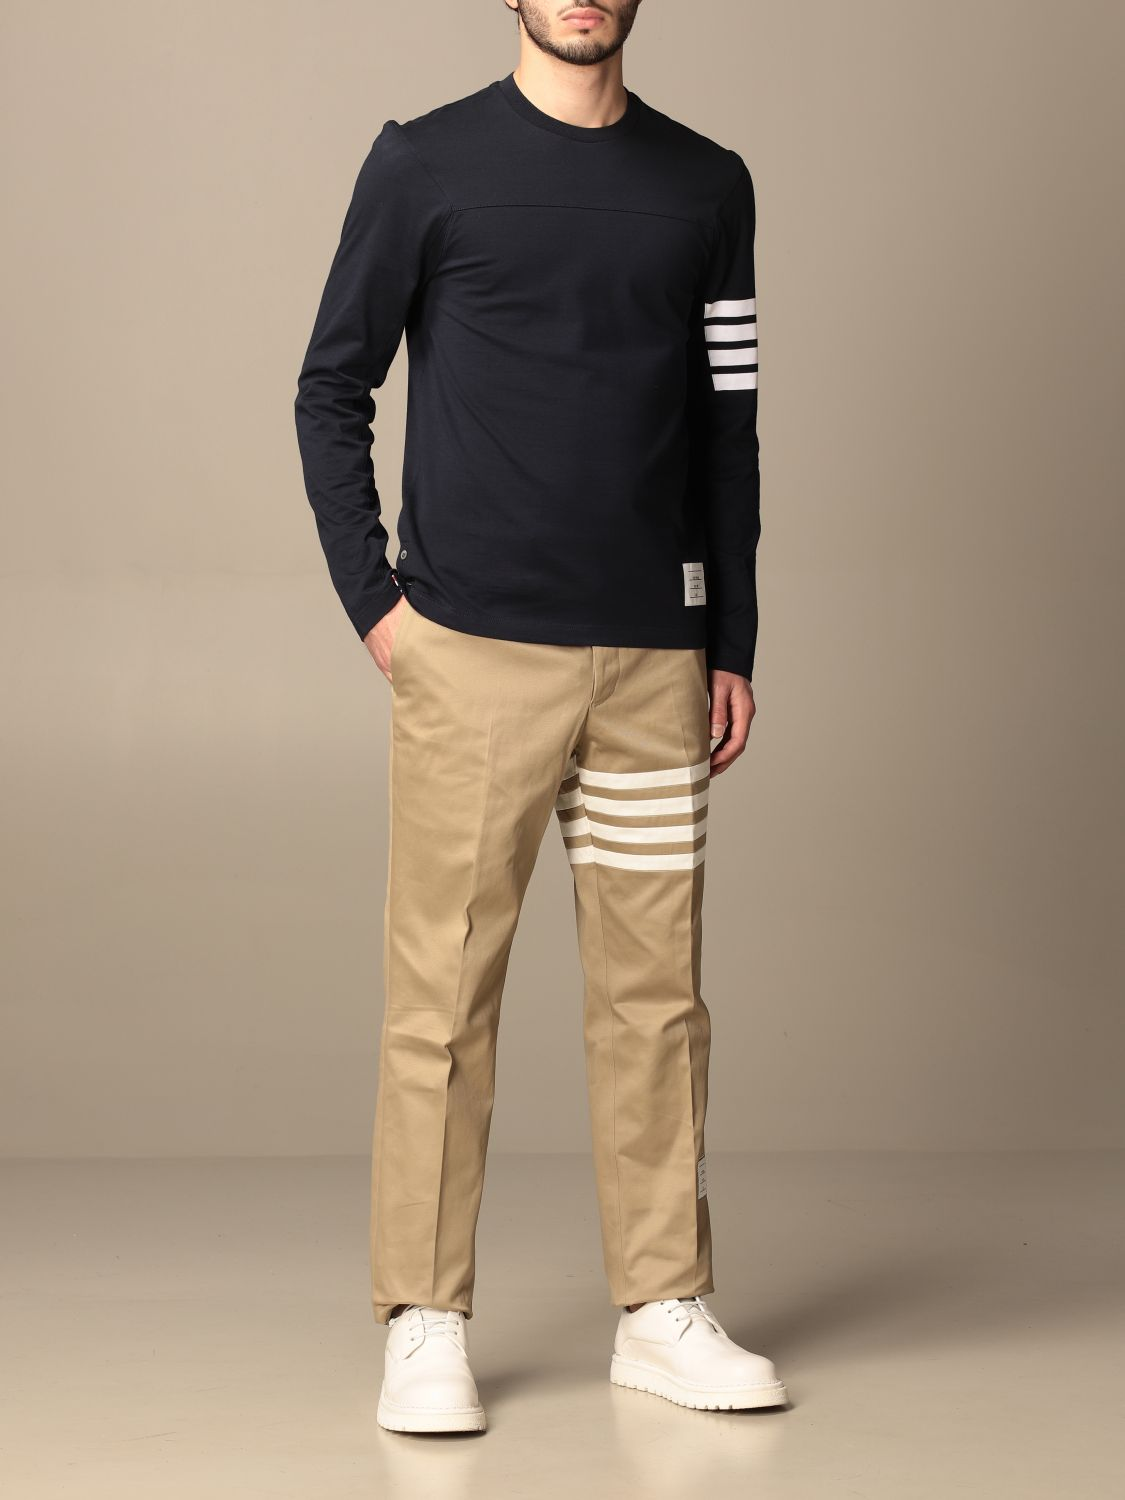 T-shirt Thom Browne: T-shirt Thom Browne in cotone con dettaglio a righe blue navy 2